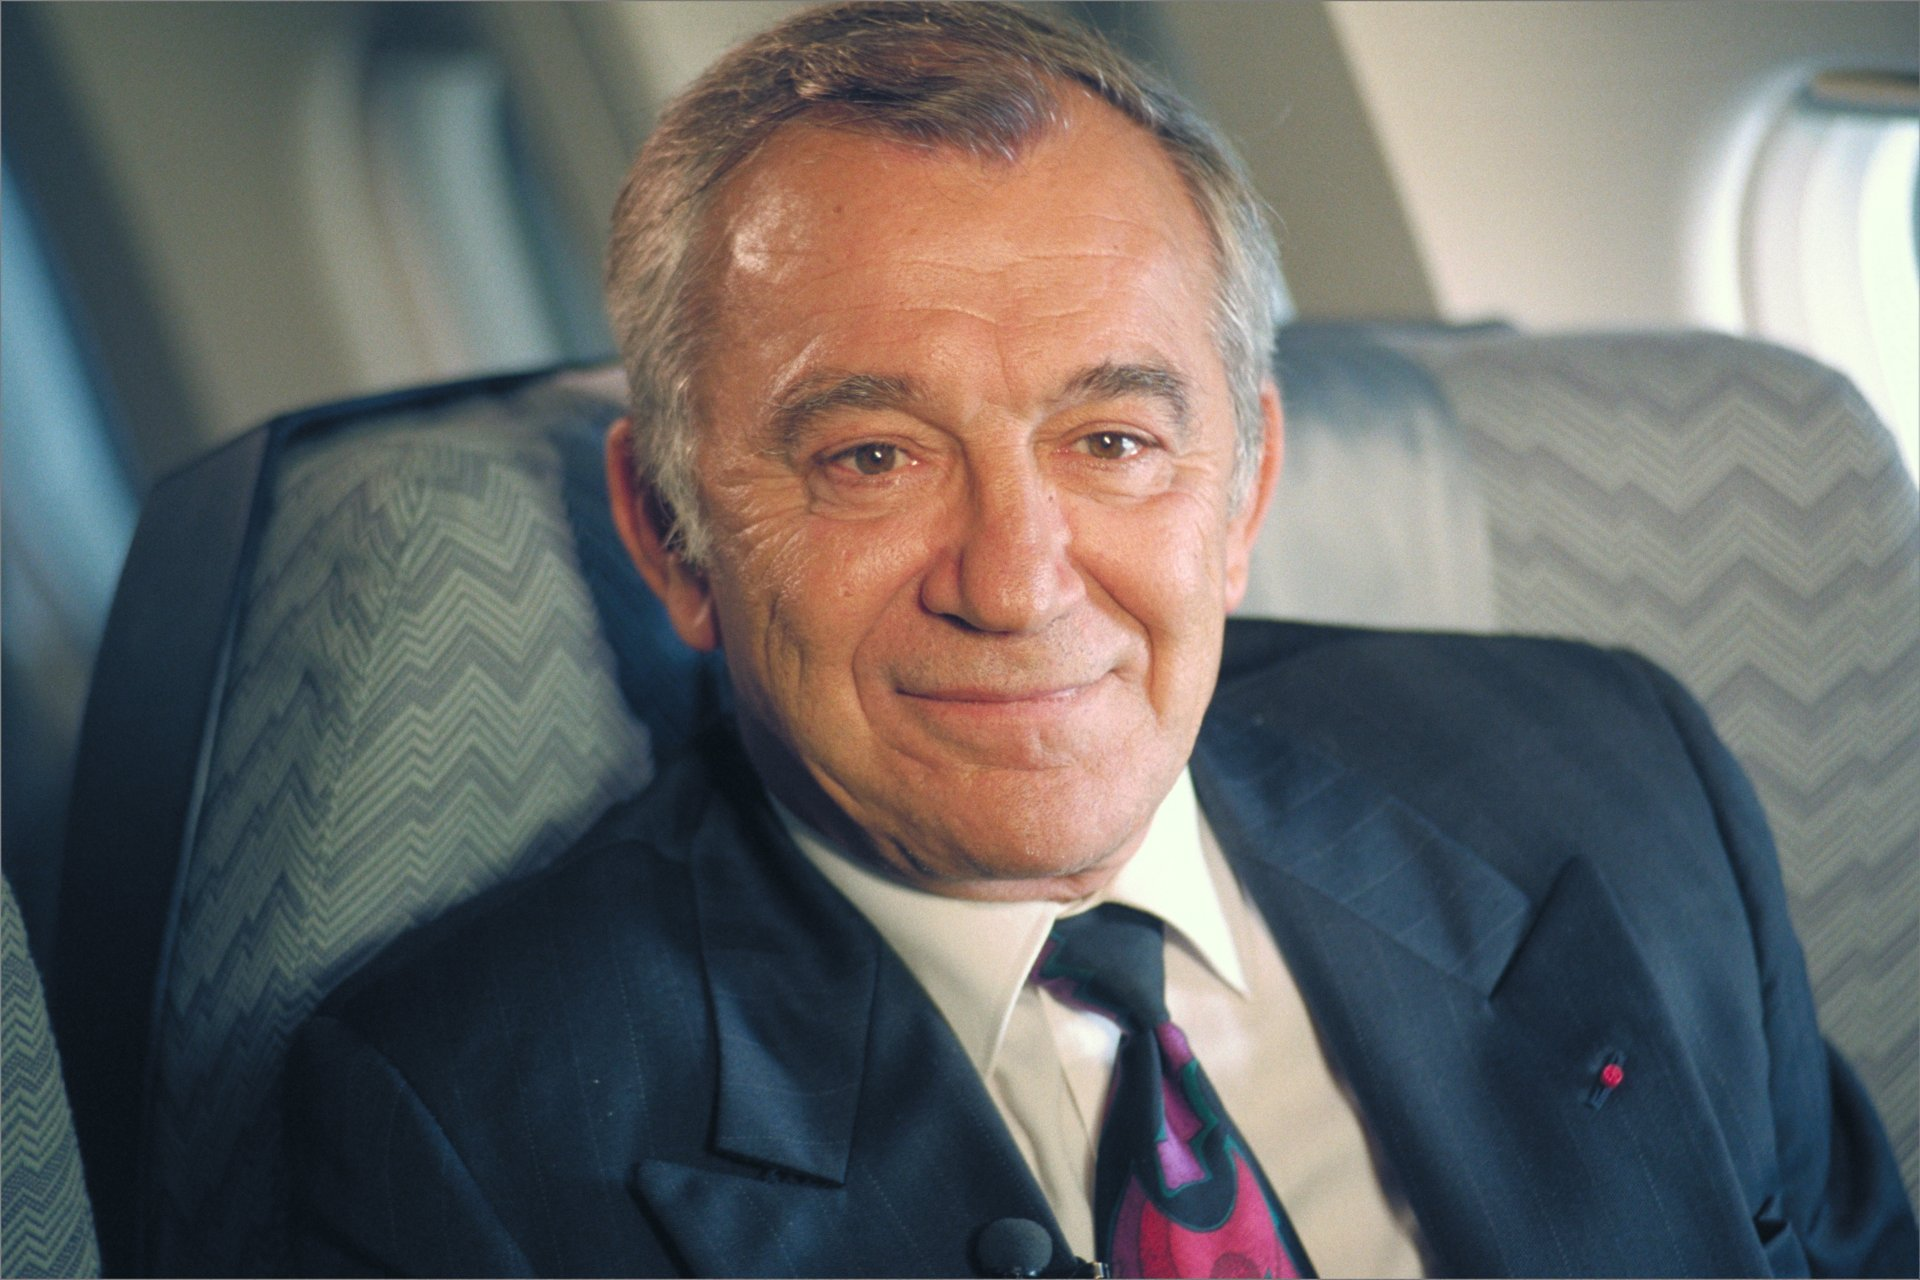 Bernard Ziegler (1933-2021), former Airbus Senior Vice President for Engineering and one of the company's engineering pioneers, had a career that spanned some four decades